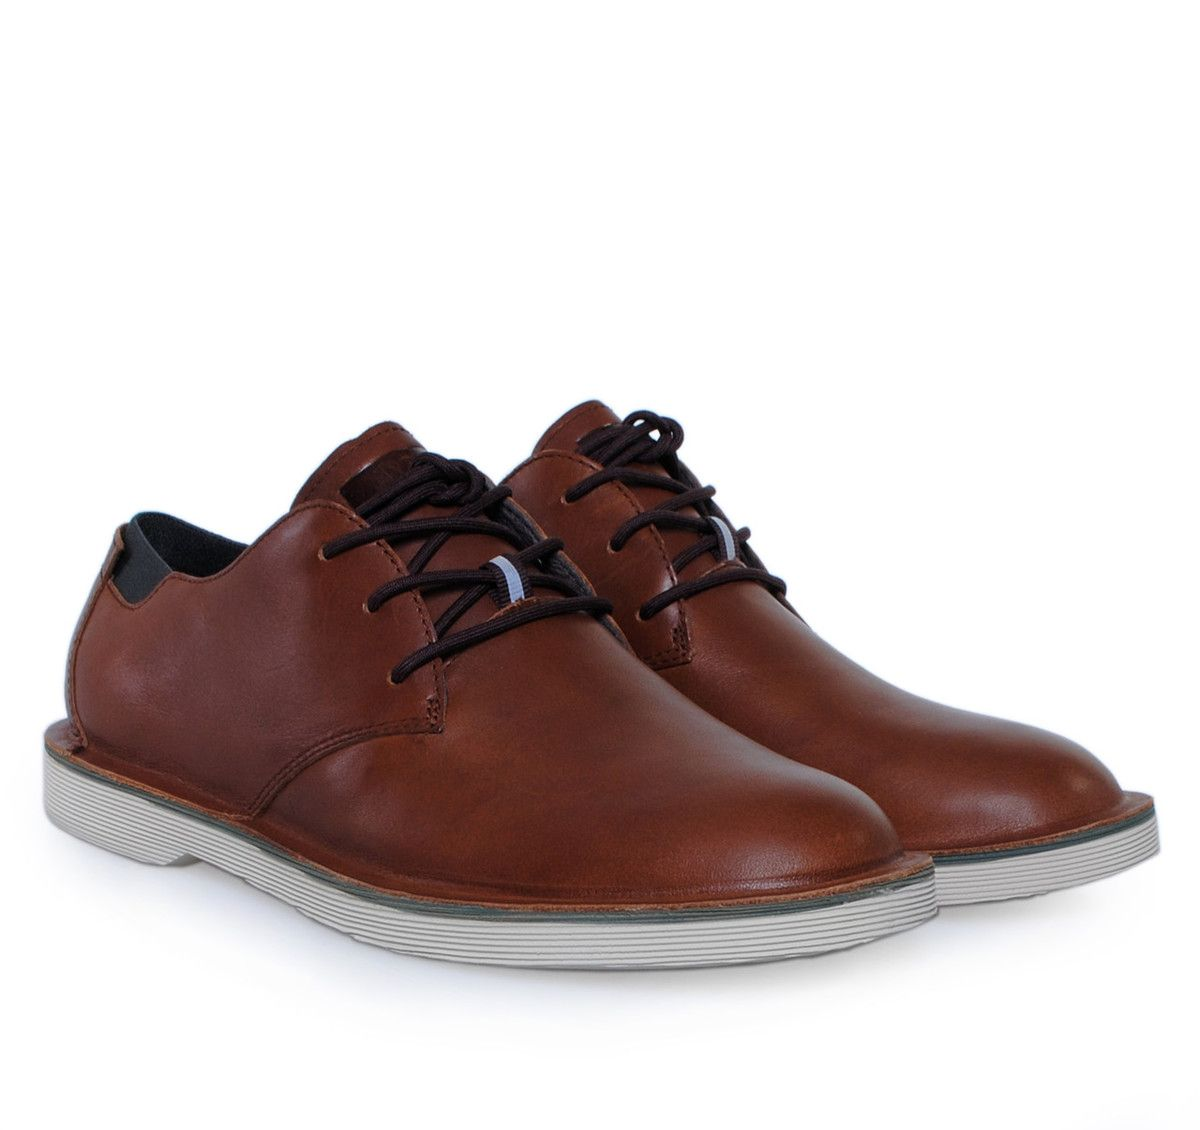 bcc3cc674a CAMPER Brown Casual Leather Shoes. Ανδρικά καφέ παπούτσια με κορδόνια.